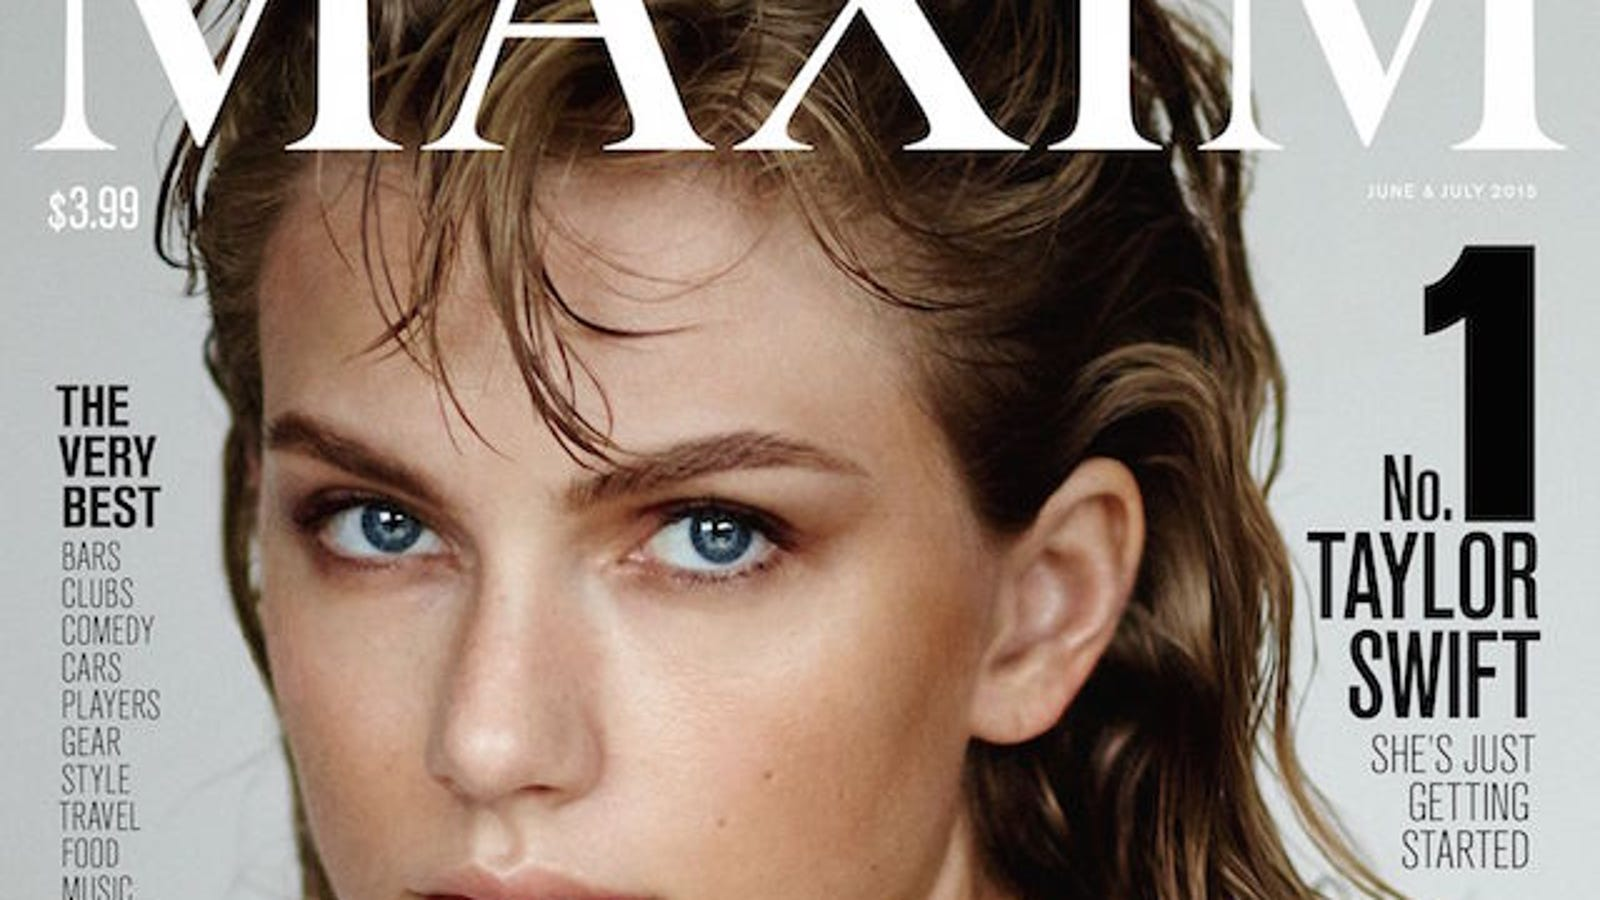 Taylor Swift Declared Maxims Hottest Woman Shakes It Off